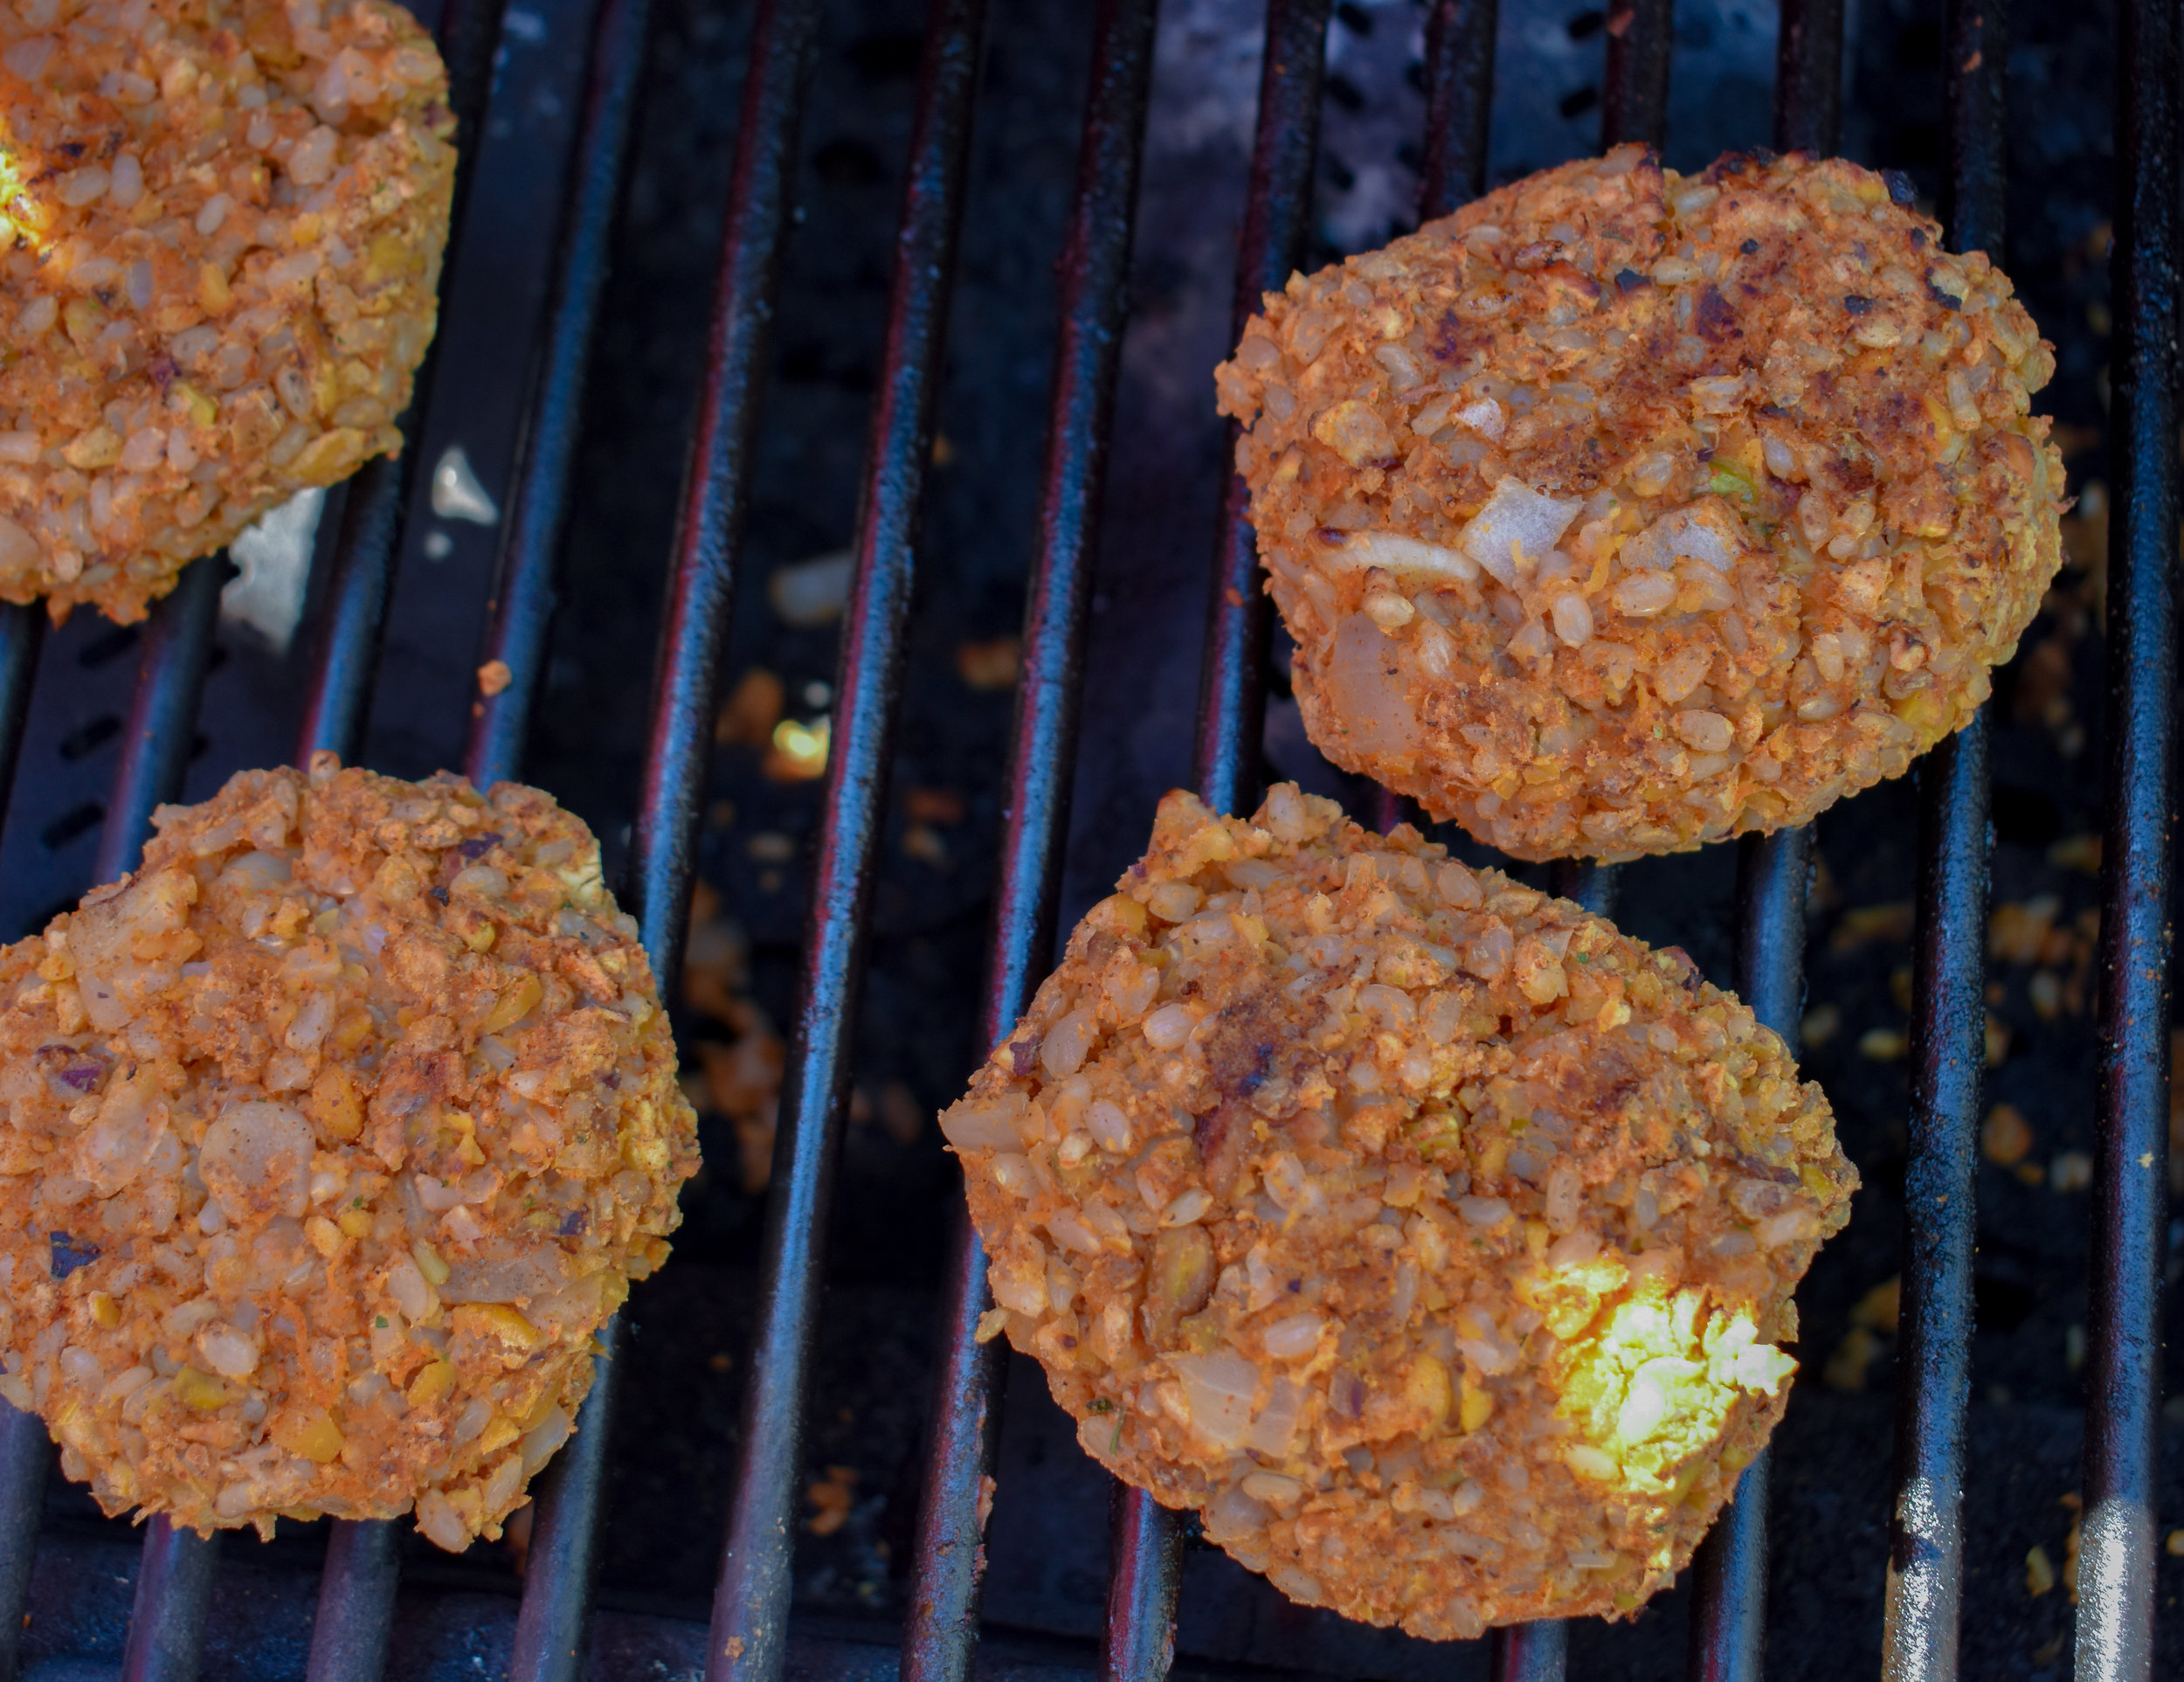 10. Cook burgers over medium heat on a preheated grill or over the stove top in a non-stick pan for 5-6 minutes on each side.